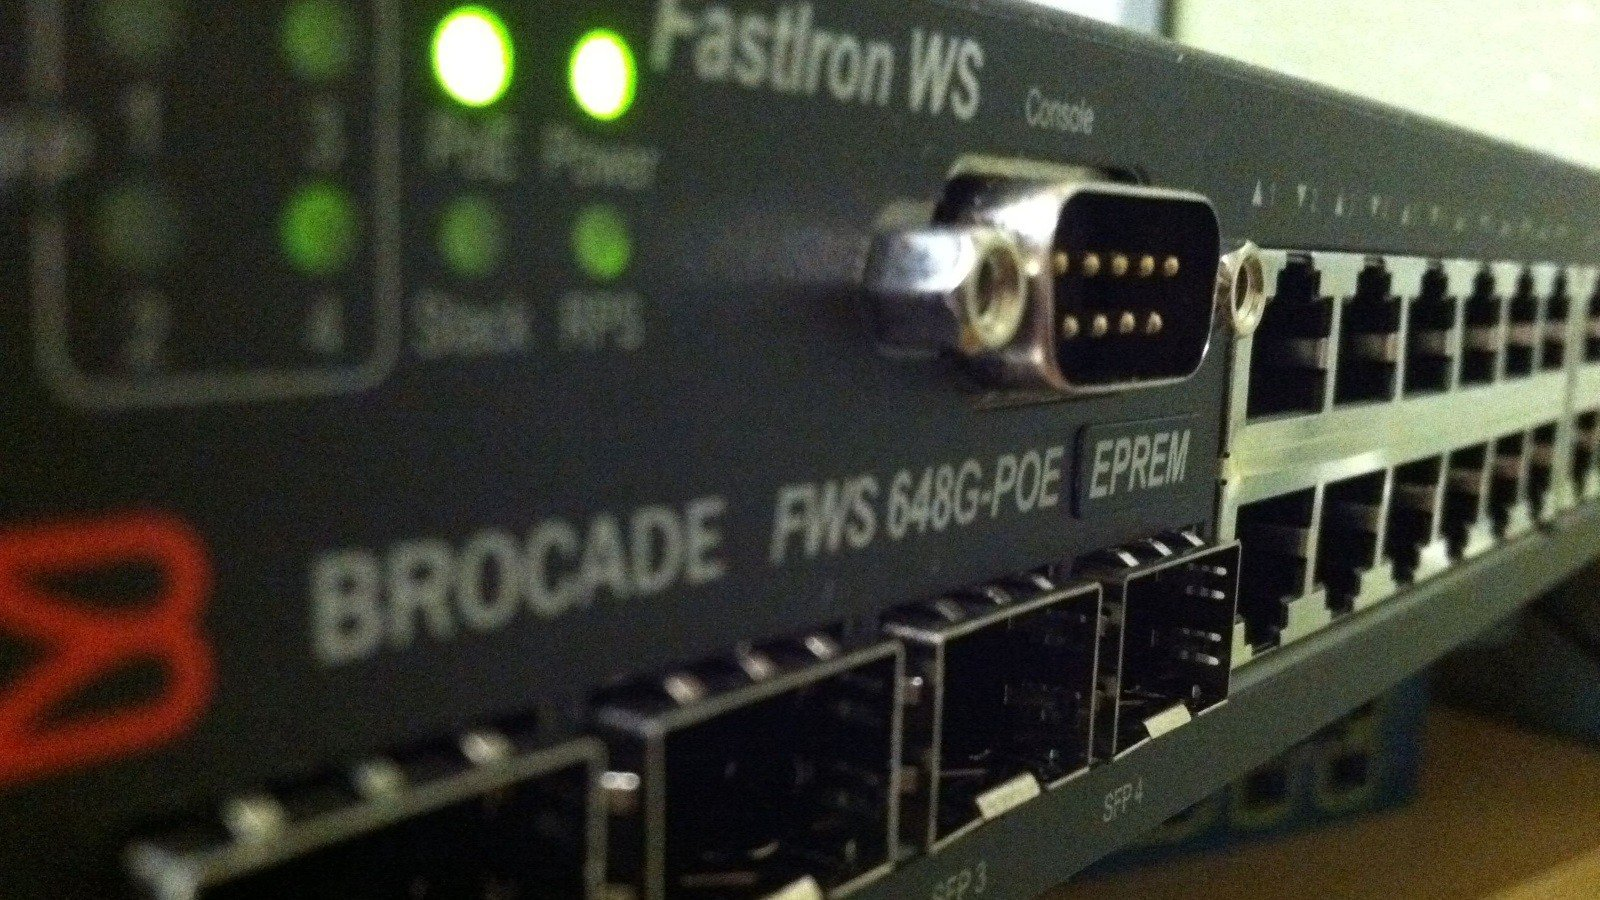 Brocade Network Device Hardware Services Provided by Riverstone Technology